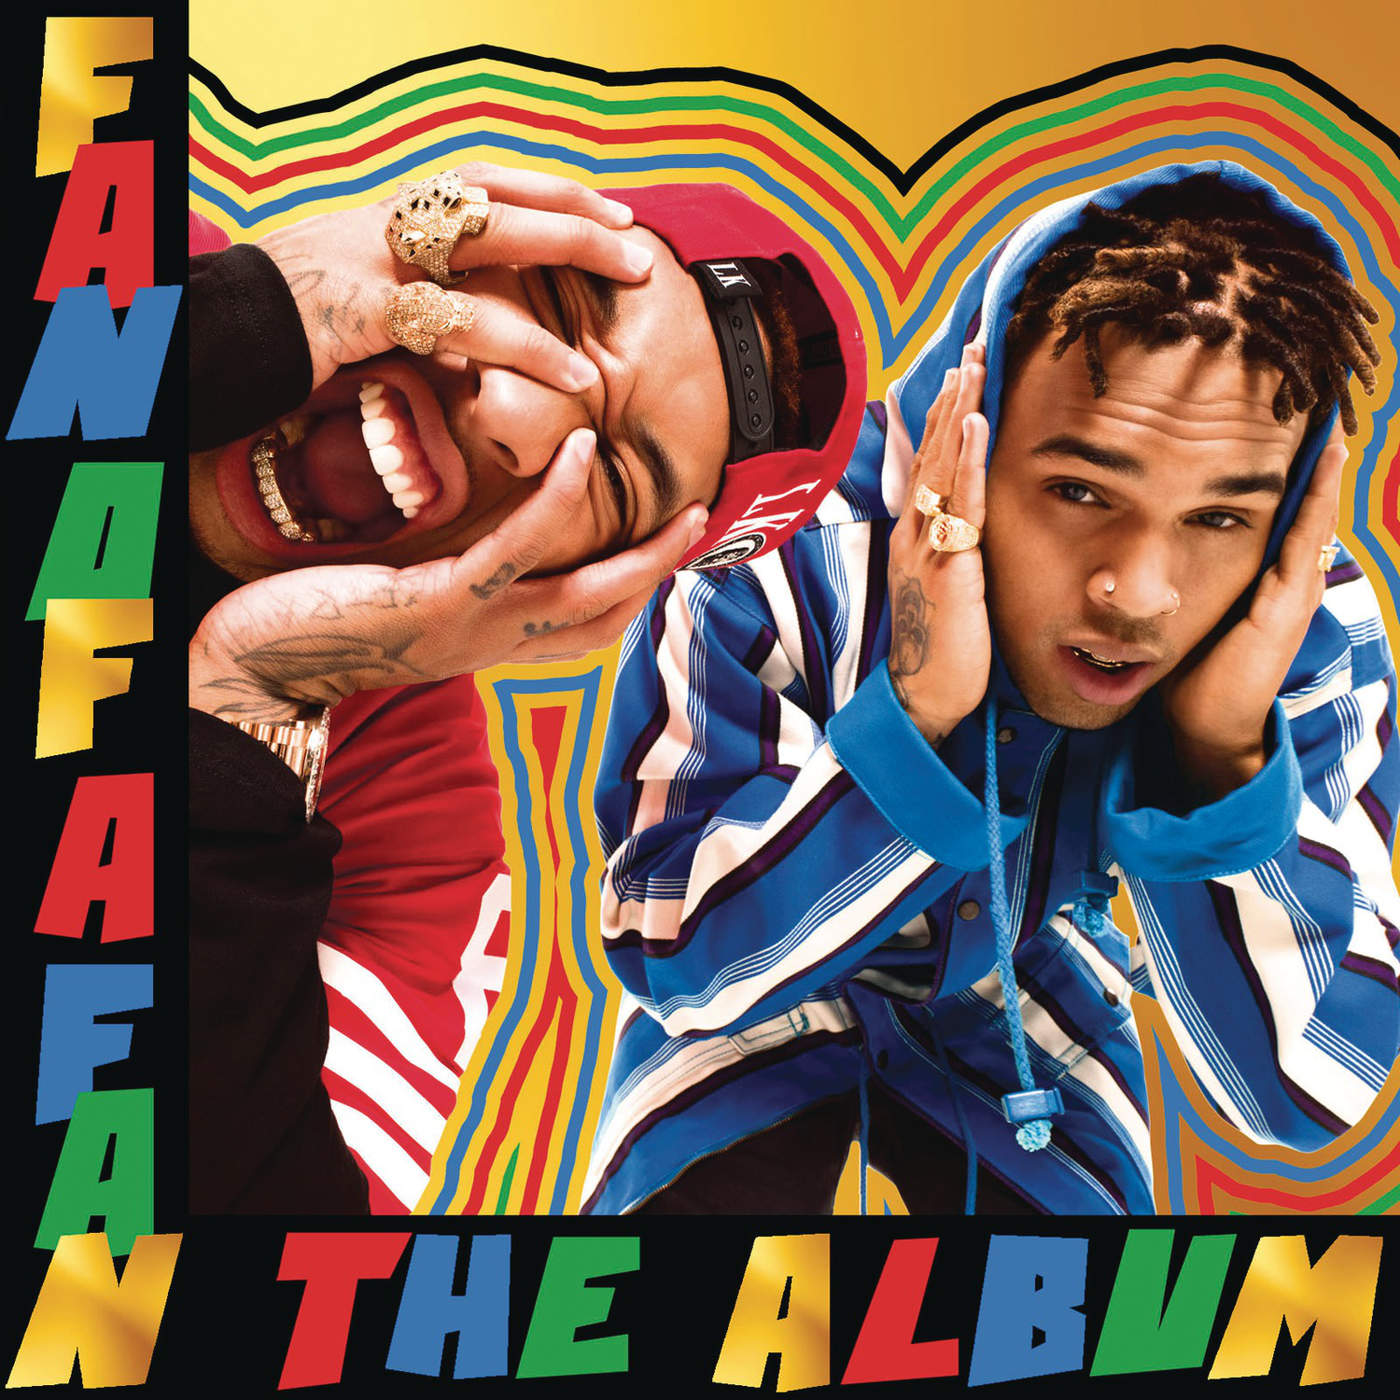 Chris Brown X Tyga - Fan of a Fan the Album (Deluxe Version)